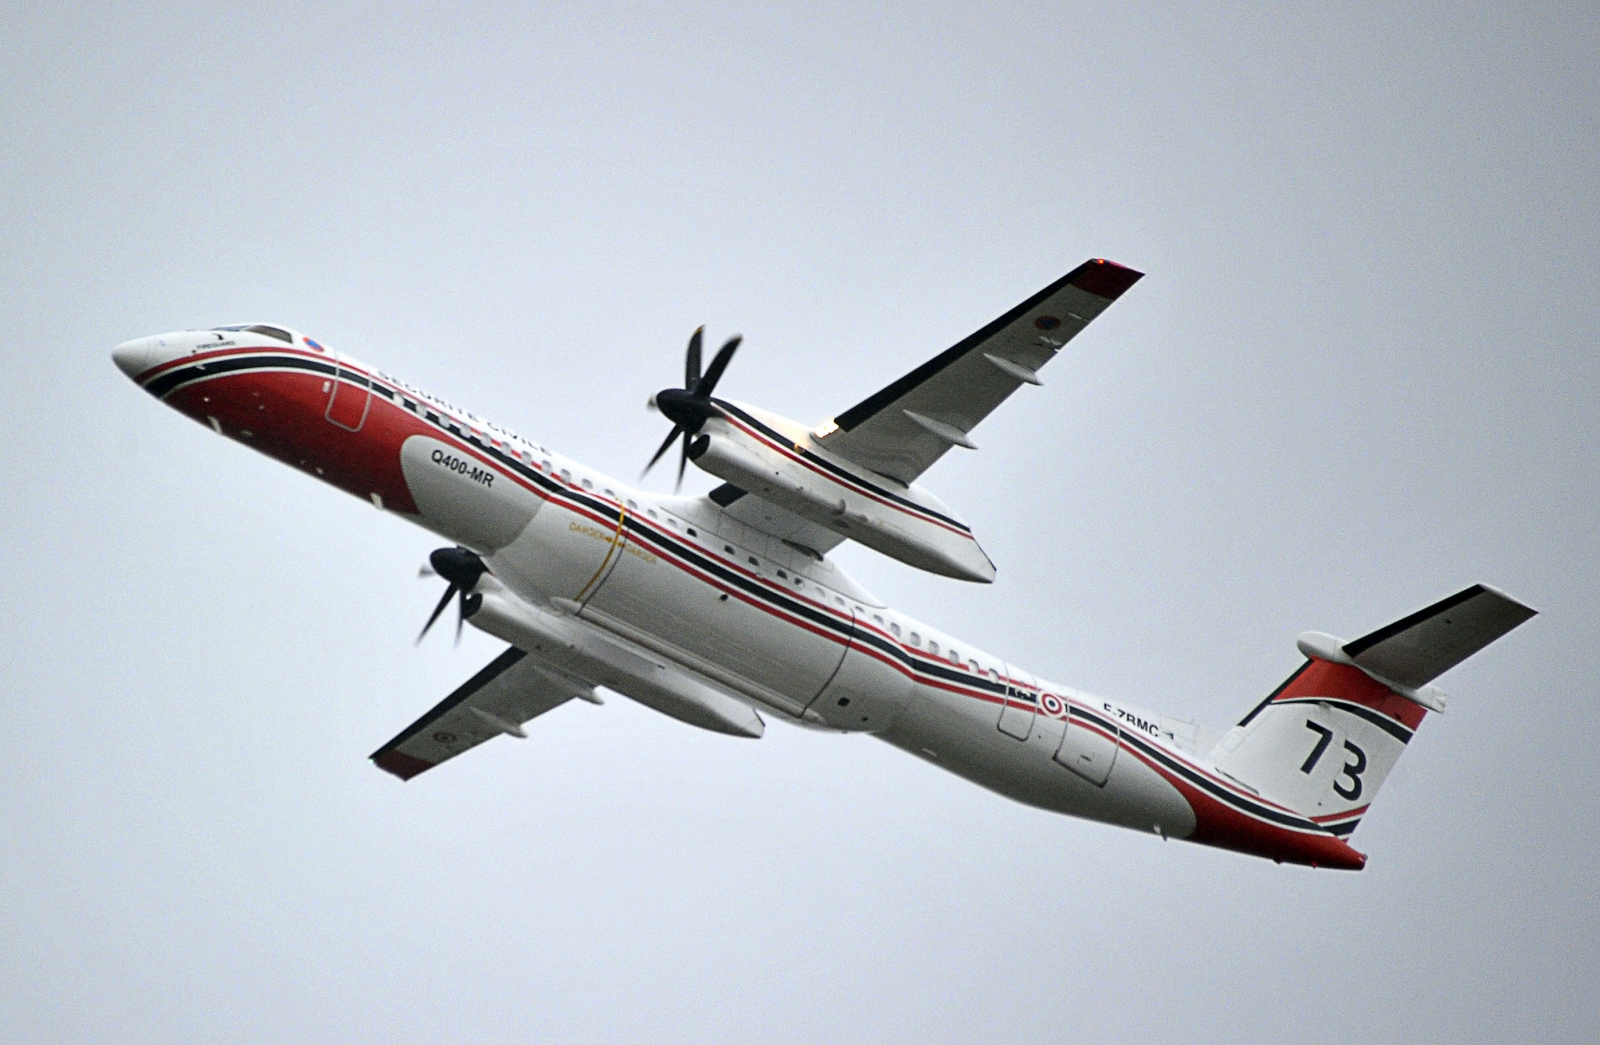 A Dash 8 plane, different from that which was landed at Belfast City Airport by a one-armed pilot